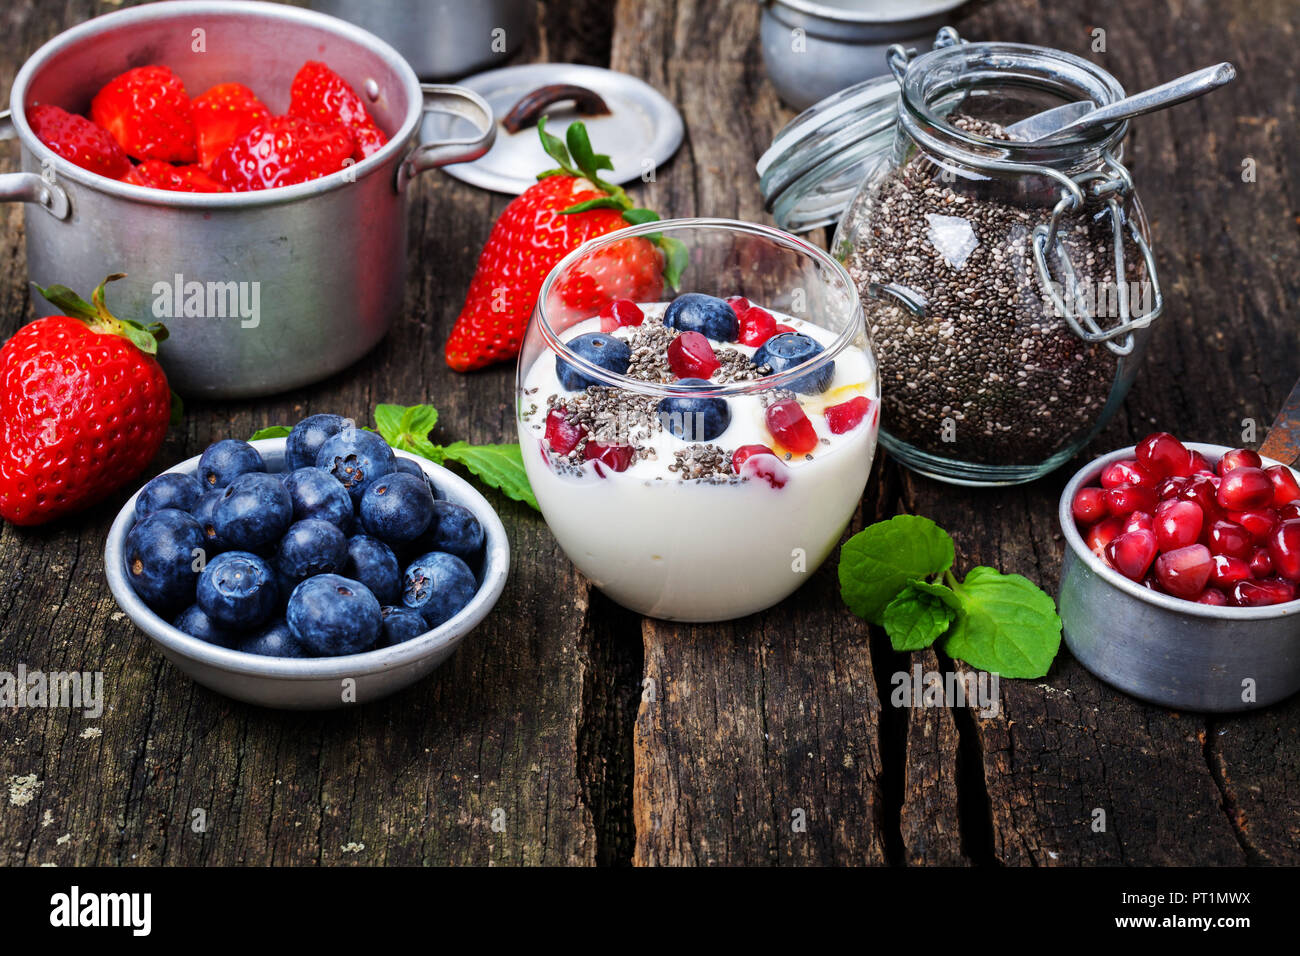 Yogurt with berries and chia seeds, superfood - Stock Image